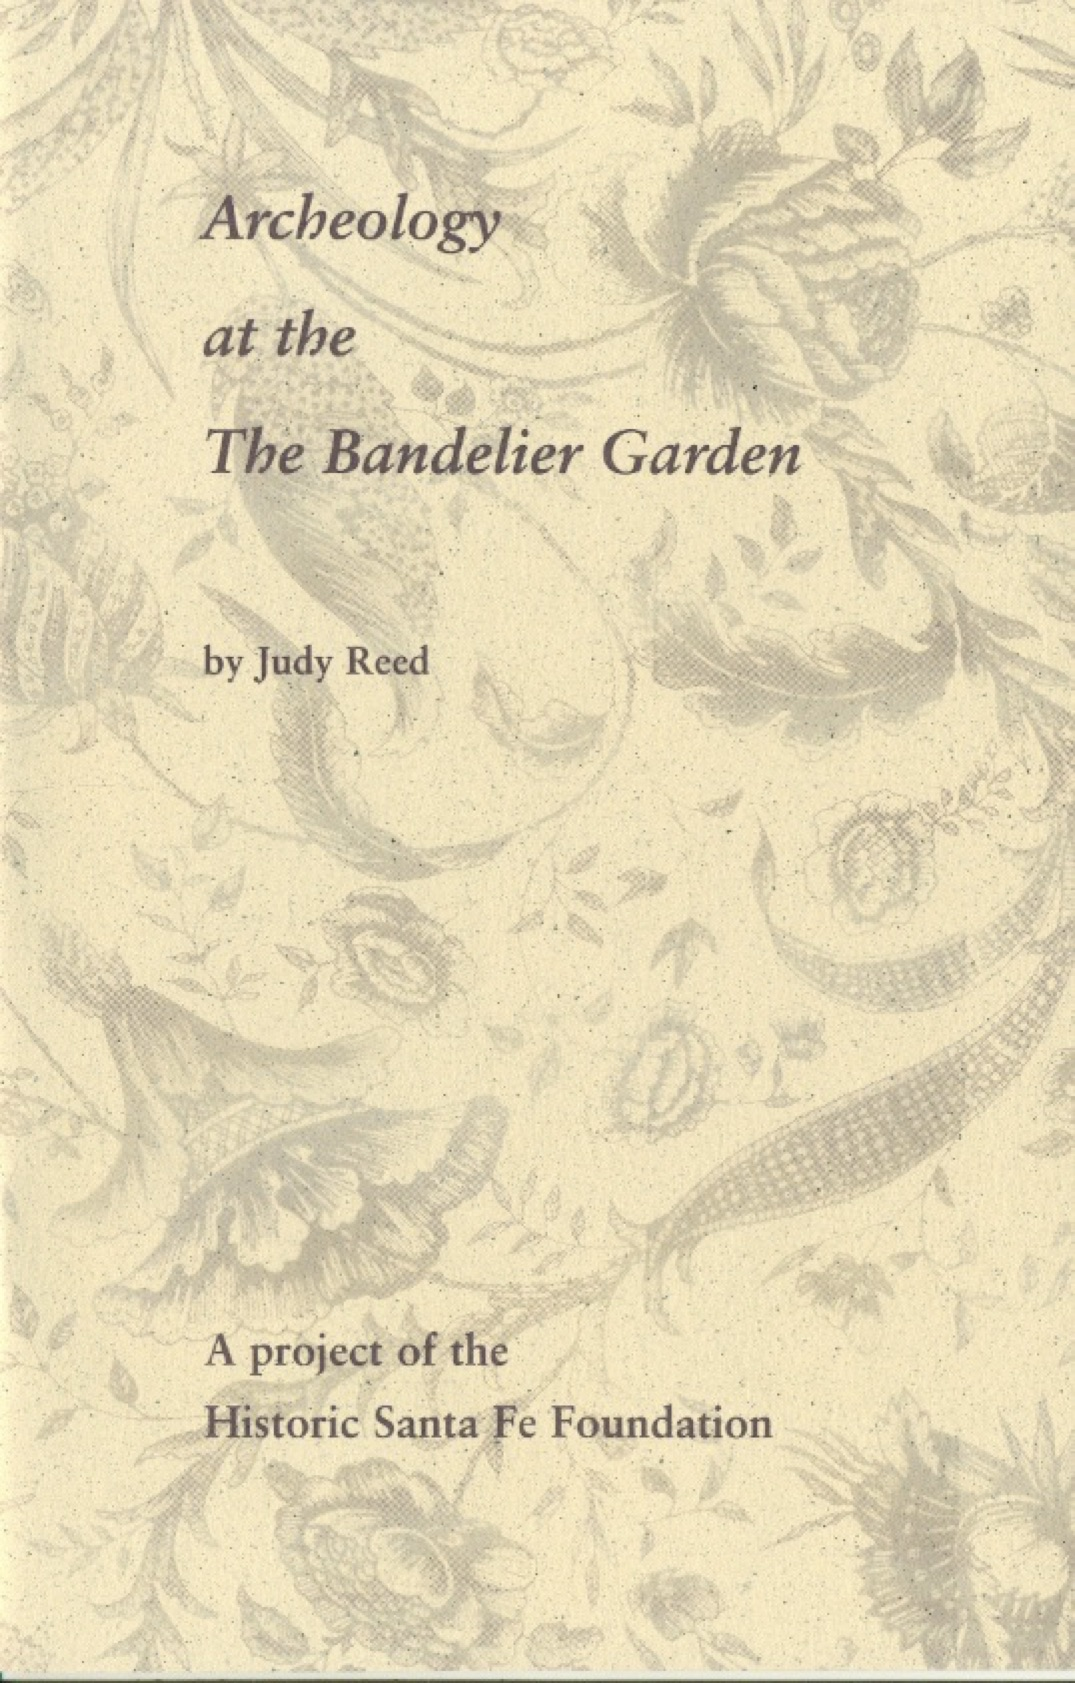 ARcheology at the bandelier garden by judy reed, circa 1996